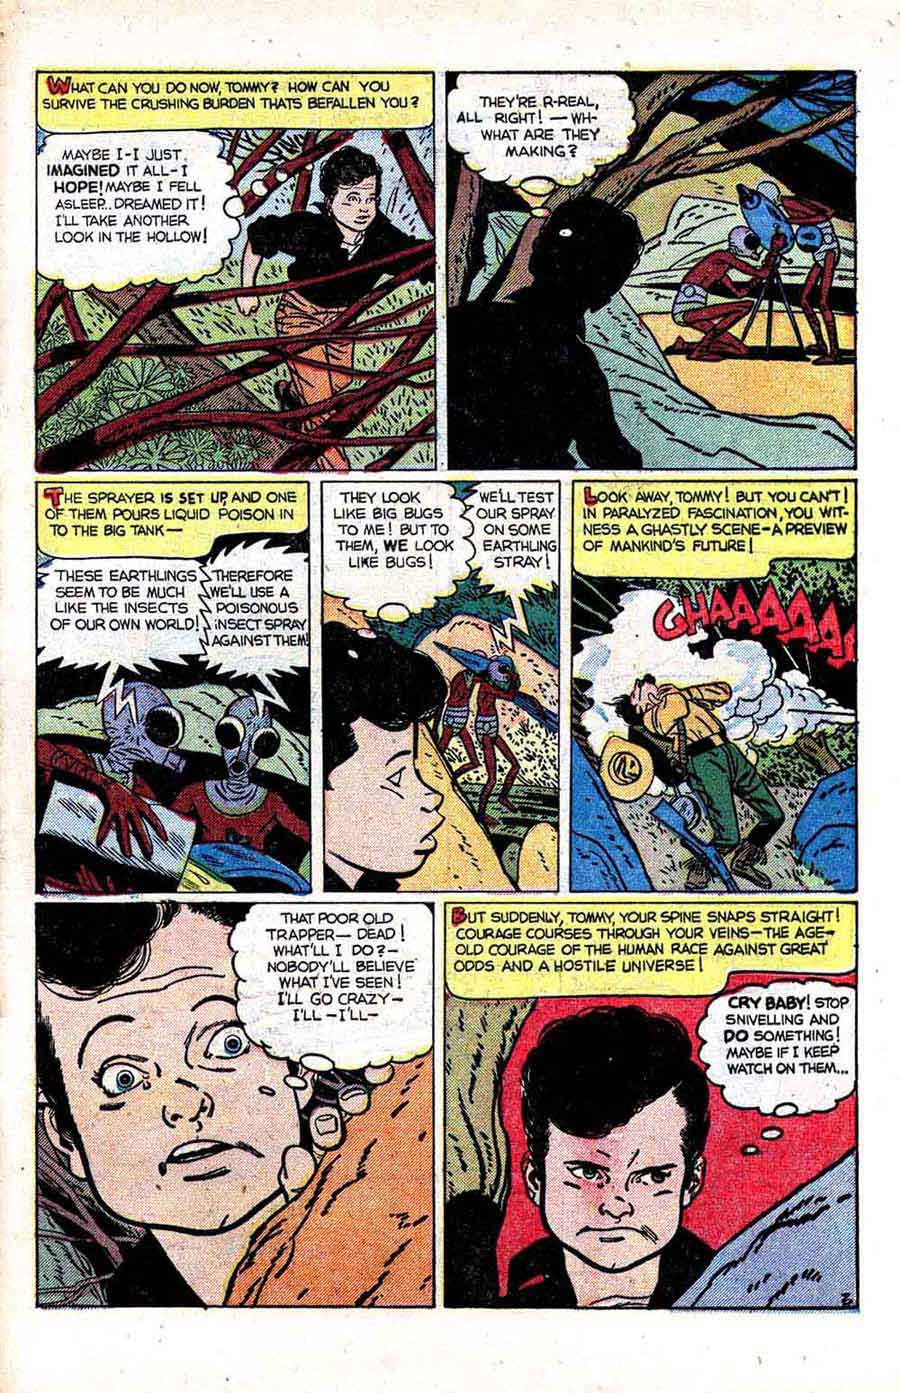 Fantastic Worlds #6 golden age science fiction comic book page art by Alex Toth